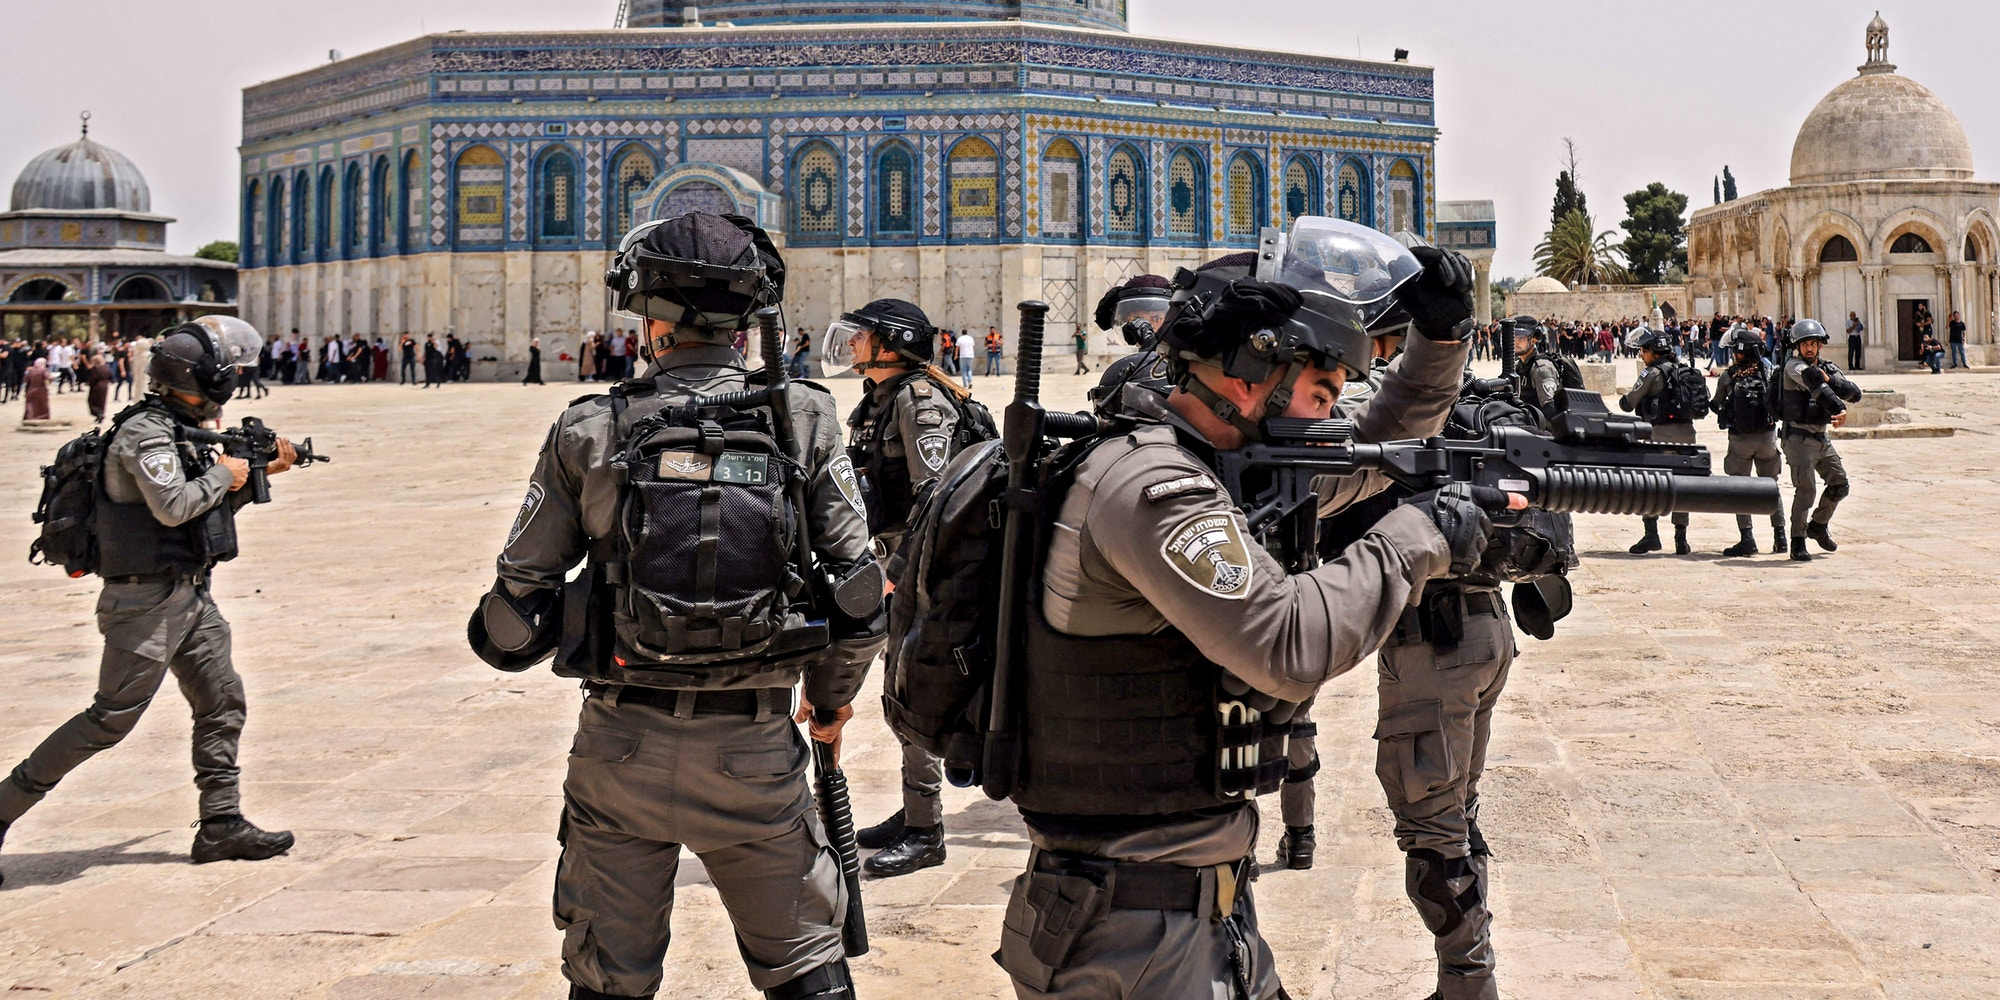 """Israeli security forces and Palestinian Muslim worshippers clash in Jerusalem's al-Aqsa mosque compound, the third holiest site of Islam, on May 21, 2021. - Fresh clashes between Palestinians and Israeli police broke out at Jerusalem's Al-Aqsa mosque compound today, in the latest unrest at the sensitive religious site, AFP journalists and police said. Israeli police spokesman Micky Rosenfeld said officers were targeted by Palestinians who threw stones and had begun """"riot"""" suppressing measures. AFP reporters said fierce clashes were ongoing at the site between police and Palestinians. (Photo by AHMAD GHARABLI / AFP) (Photo by AHMAD GHARABLI/AFP via Getty Images)"""